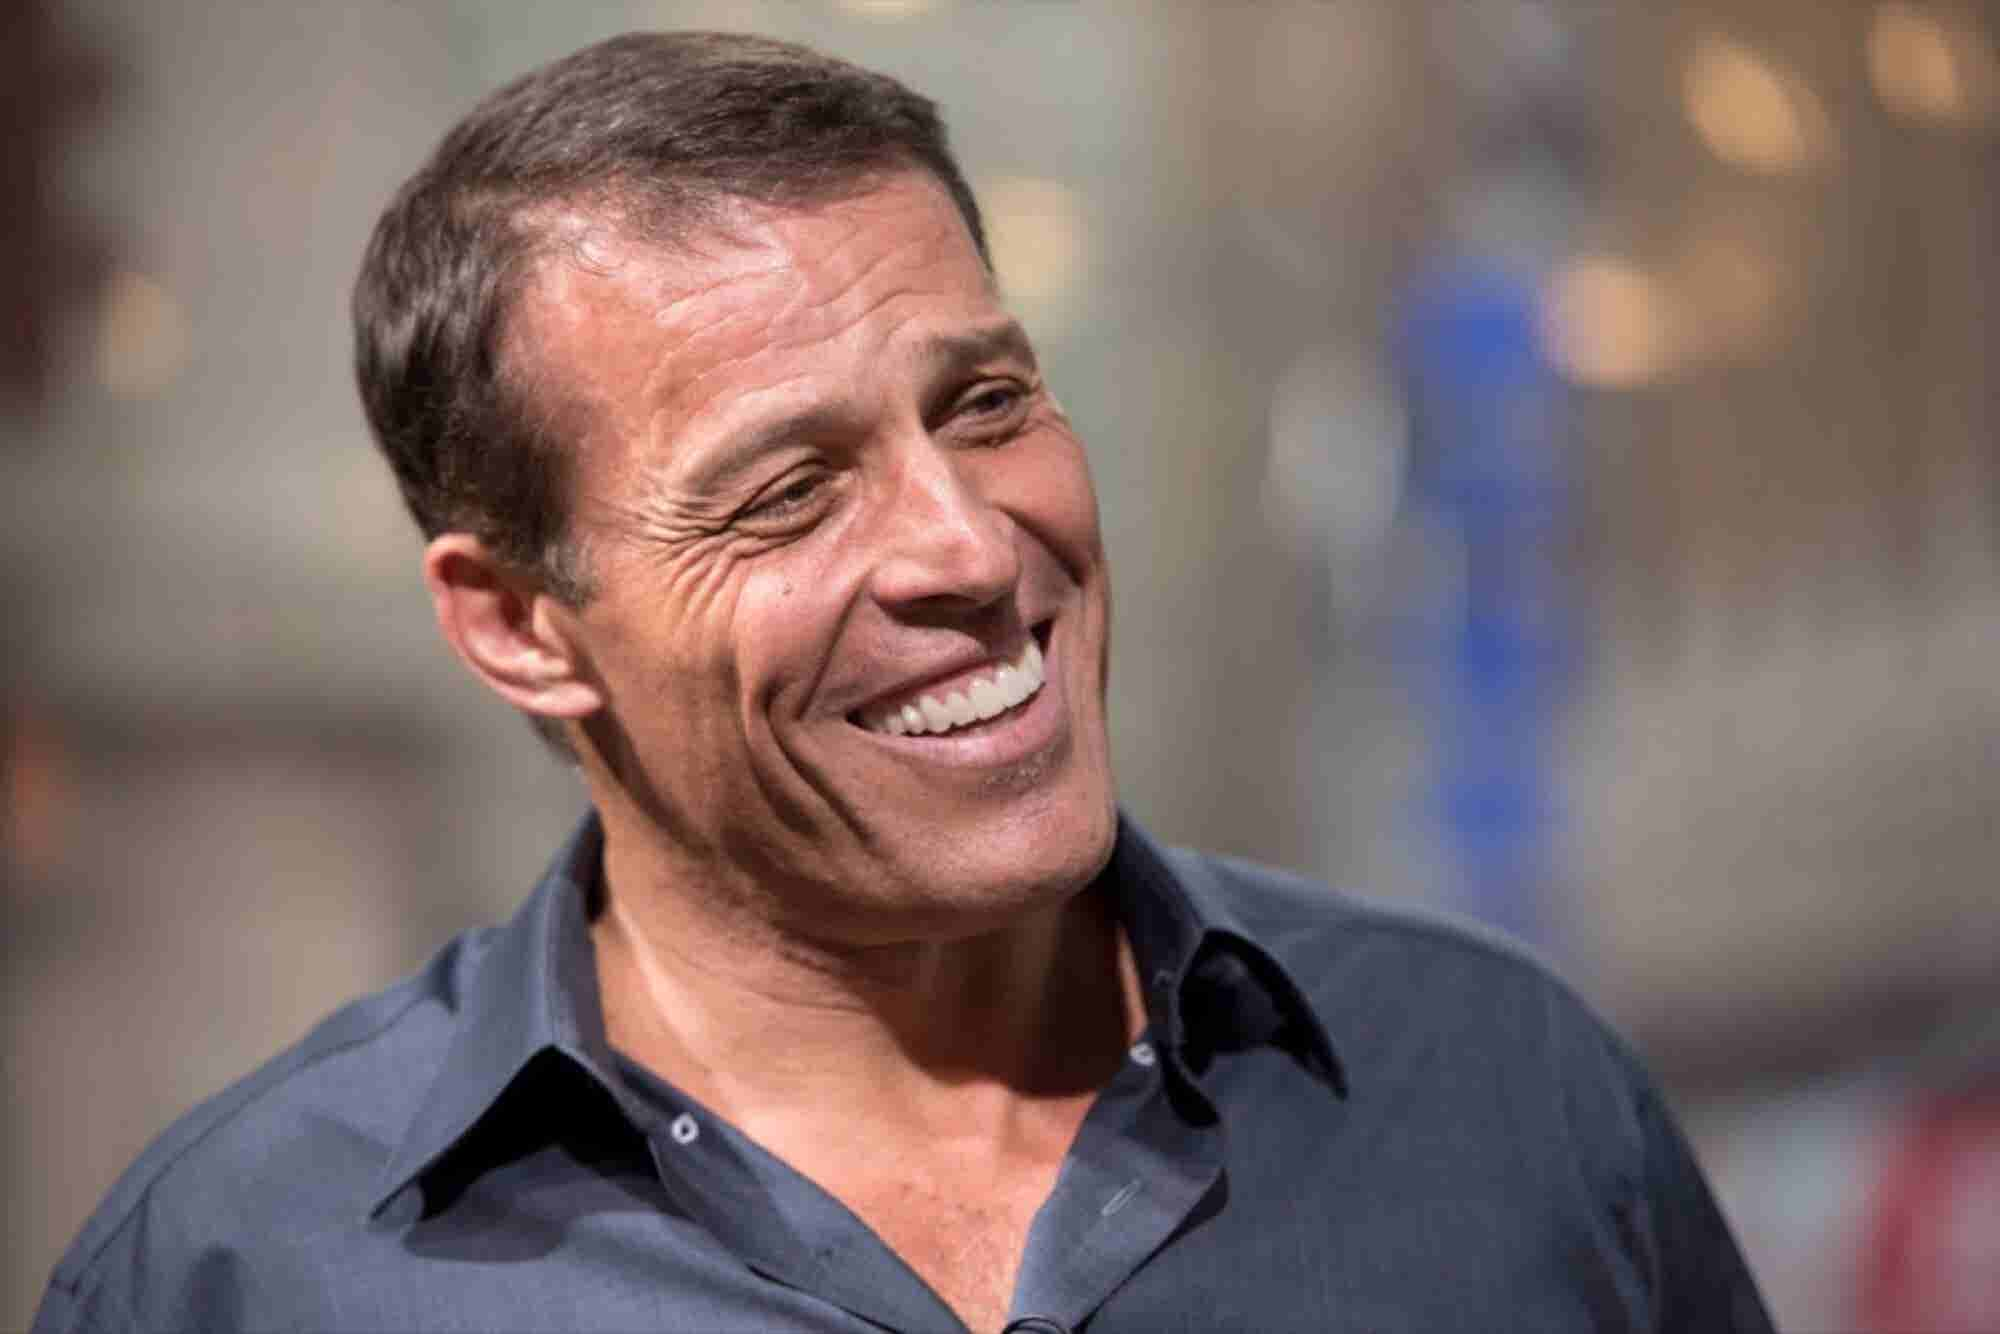 What We Learned From Tony Robbins While Staying at His Fijian Retreat